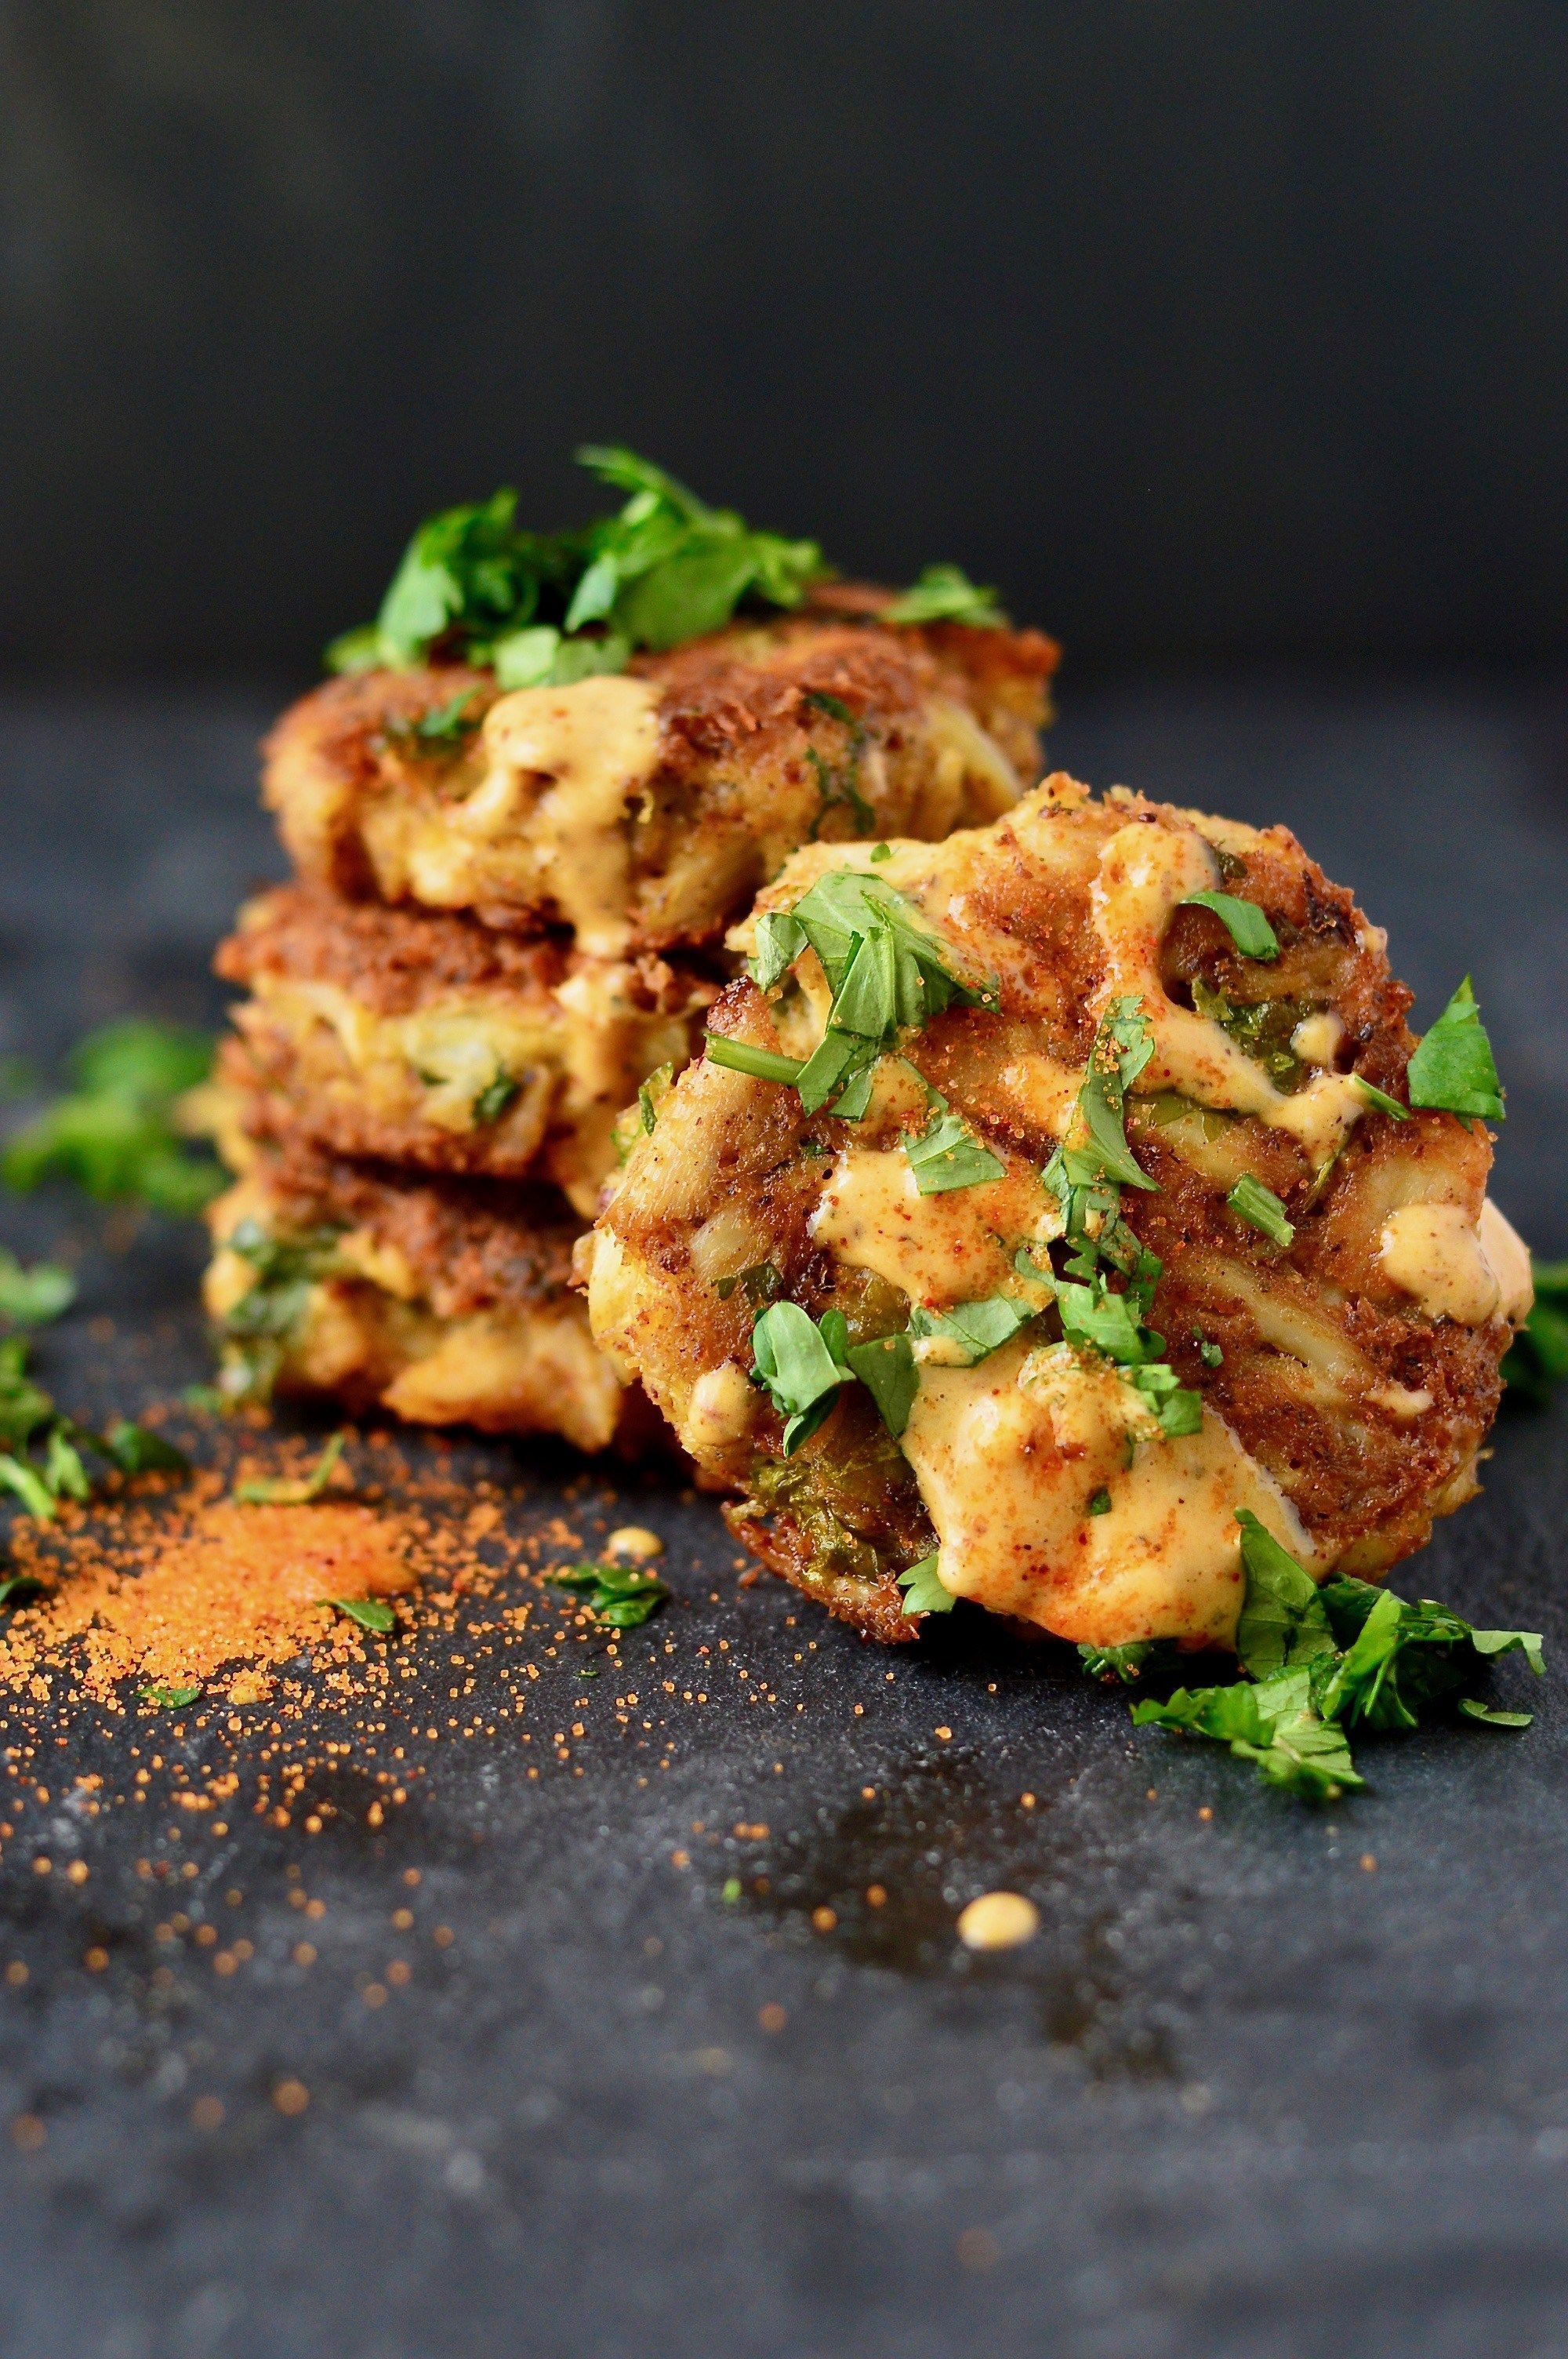 Gluten free crab cakes with old bay aioli dana monsees